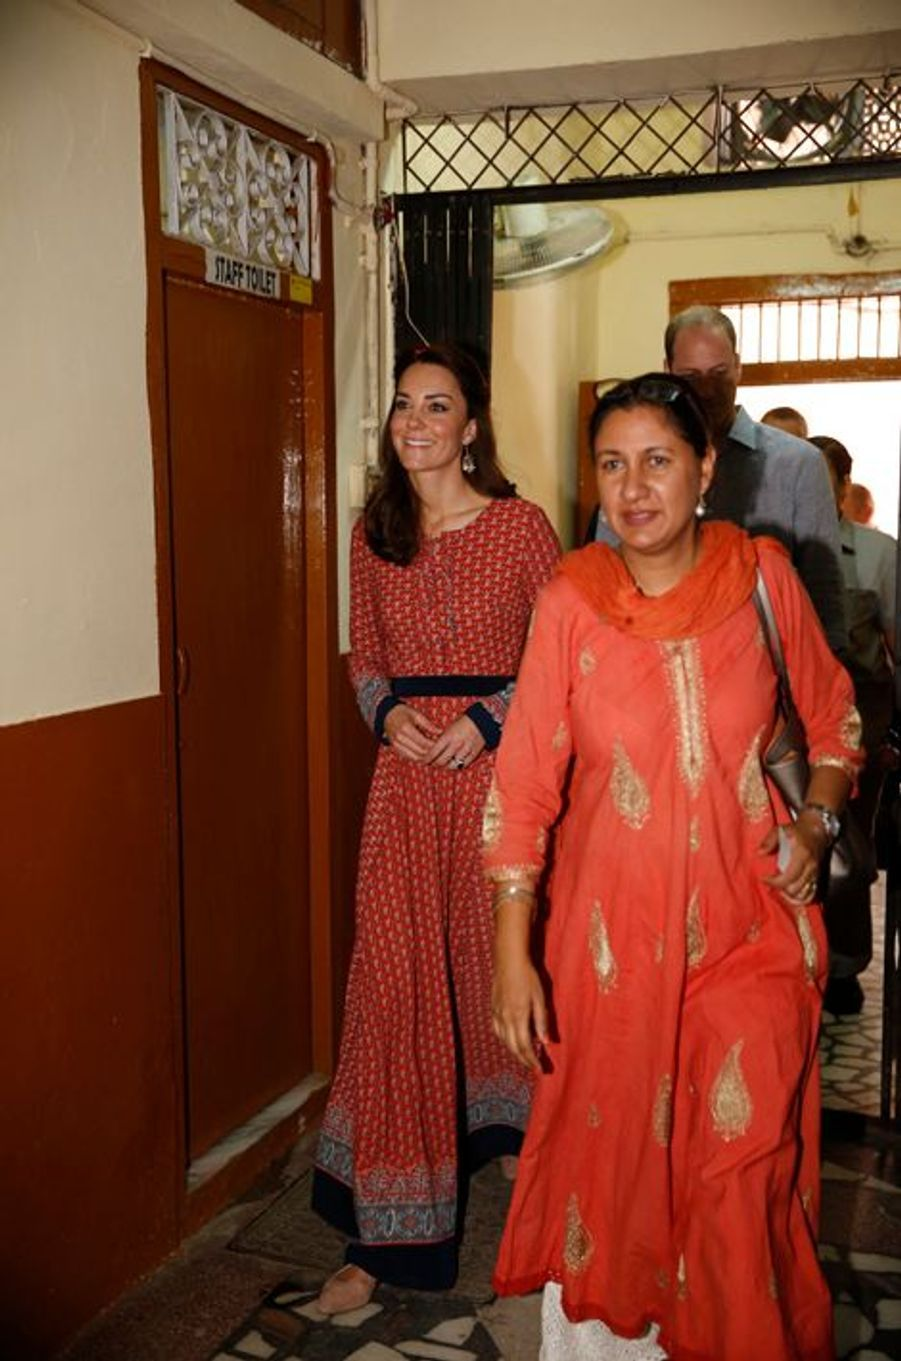 Le prince William et la duchesse Catherine de Cambridge à New Delhi, le 12 avril 2016